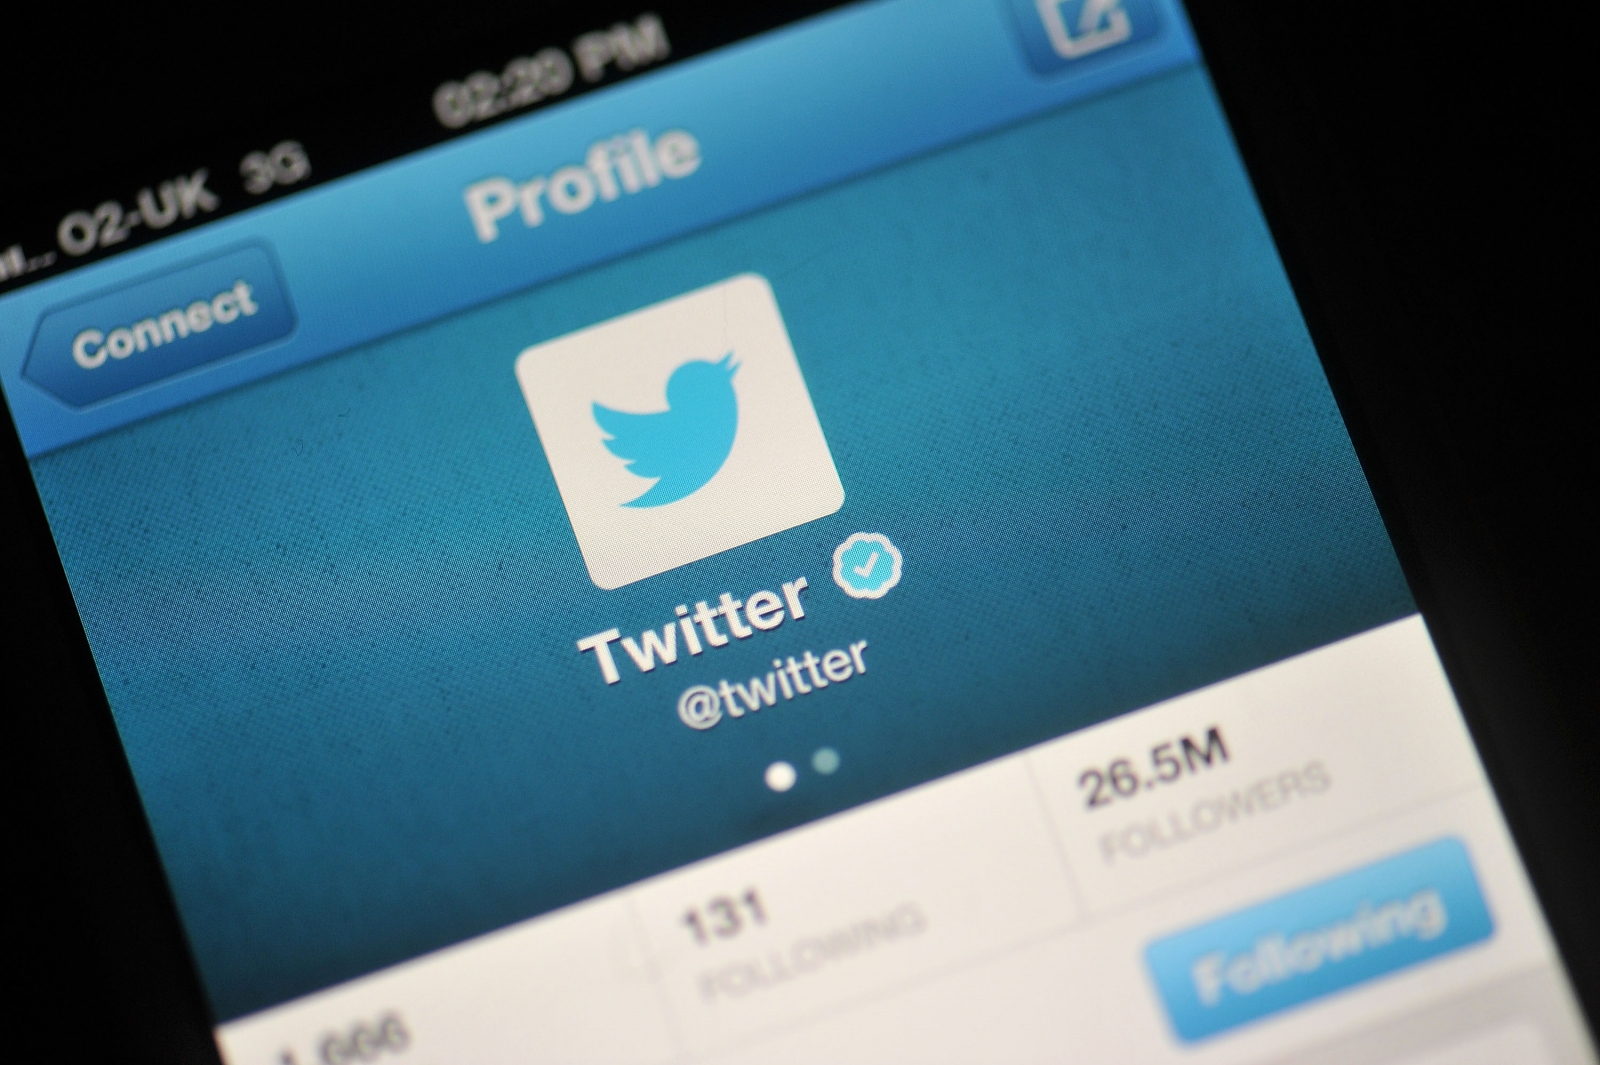 Pornbots hijack Twitter accounts of over 2,500 users in just 2 weeks